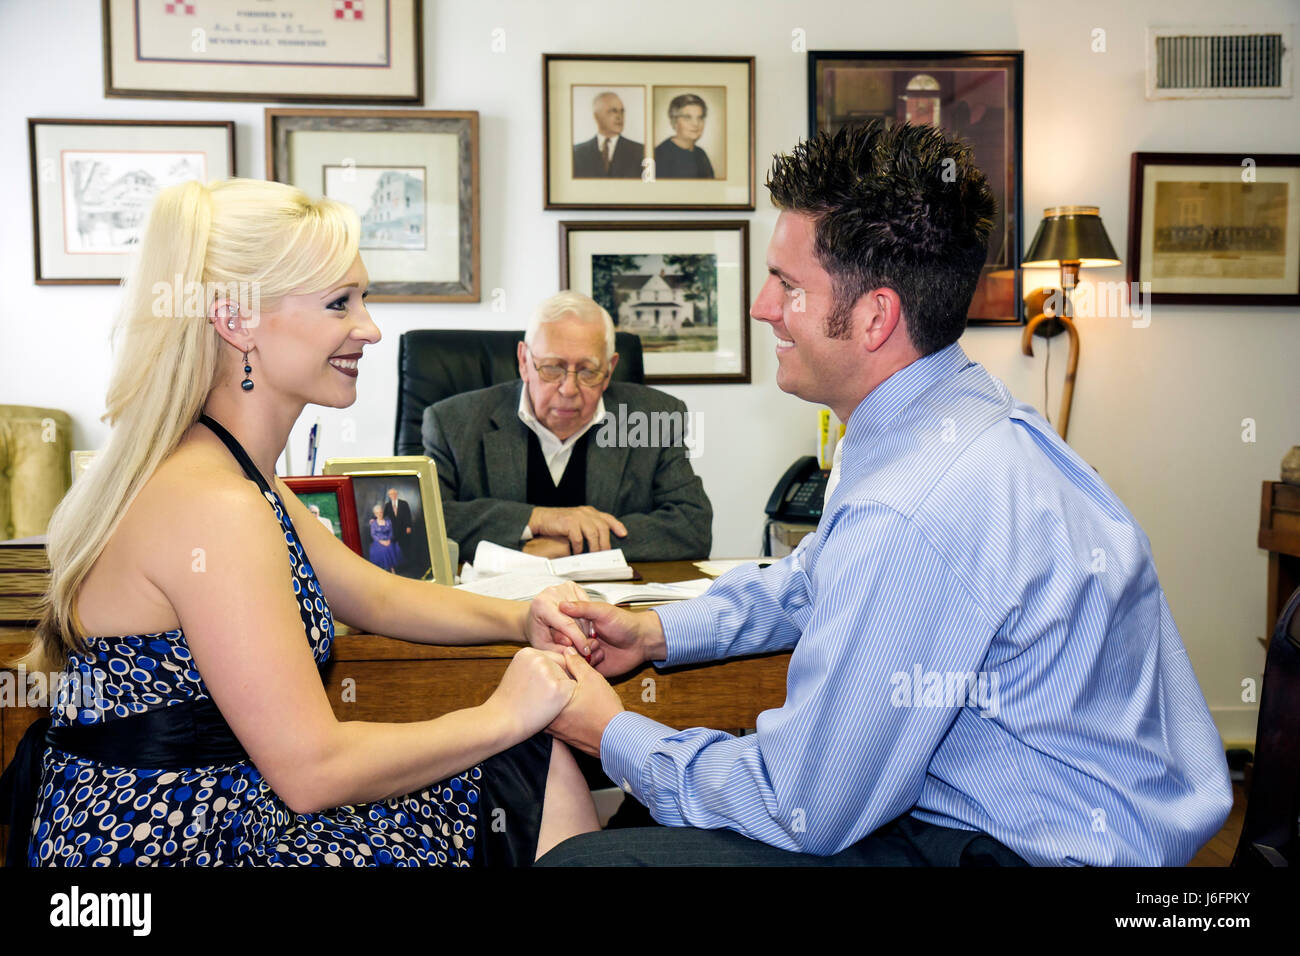 Tennessee Sevierville Jimmie Temple County Commissioner marriage civil ceremony woman man couple young senior officiate - Stock Image